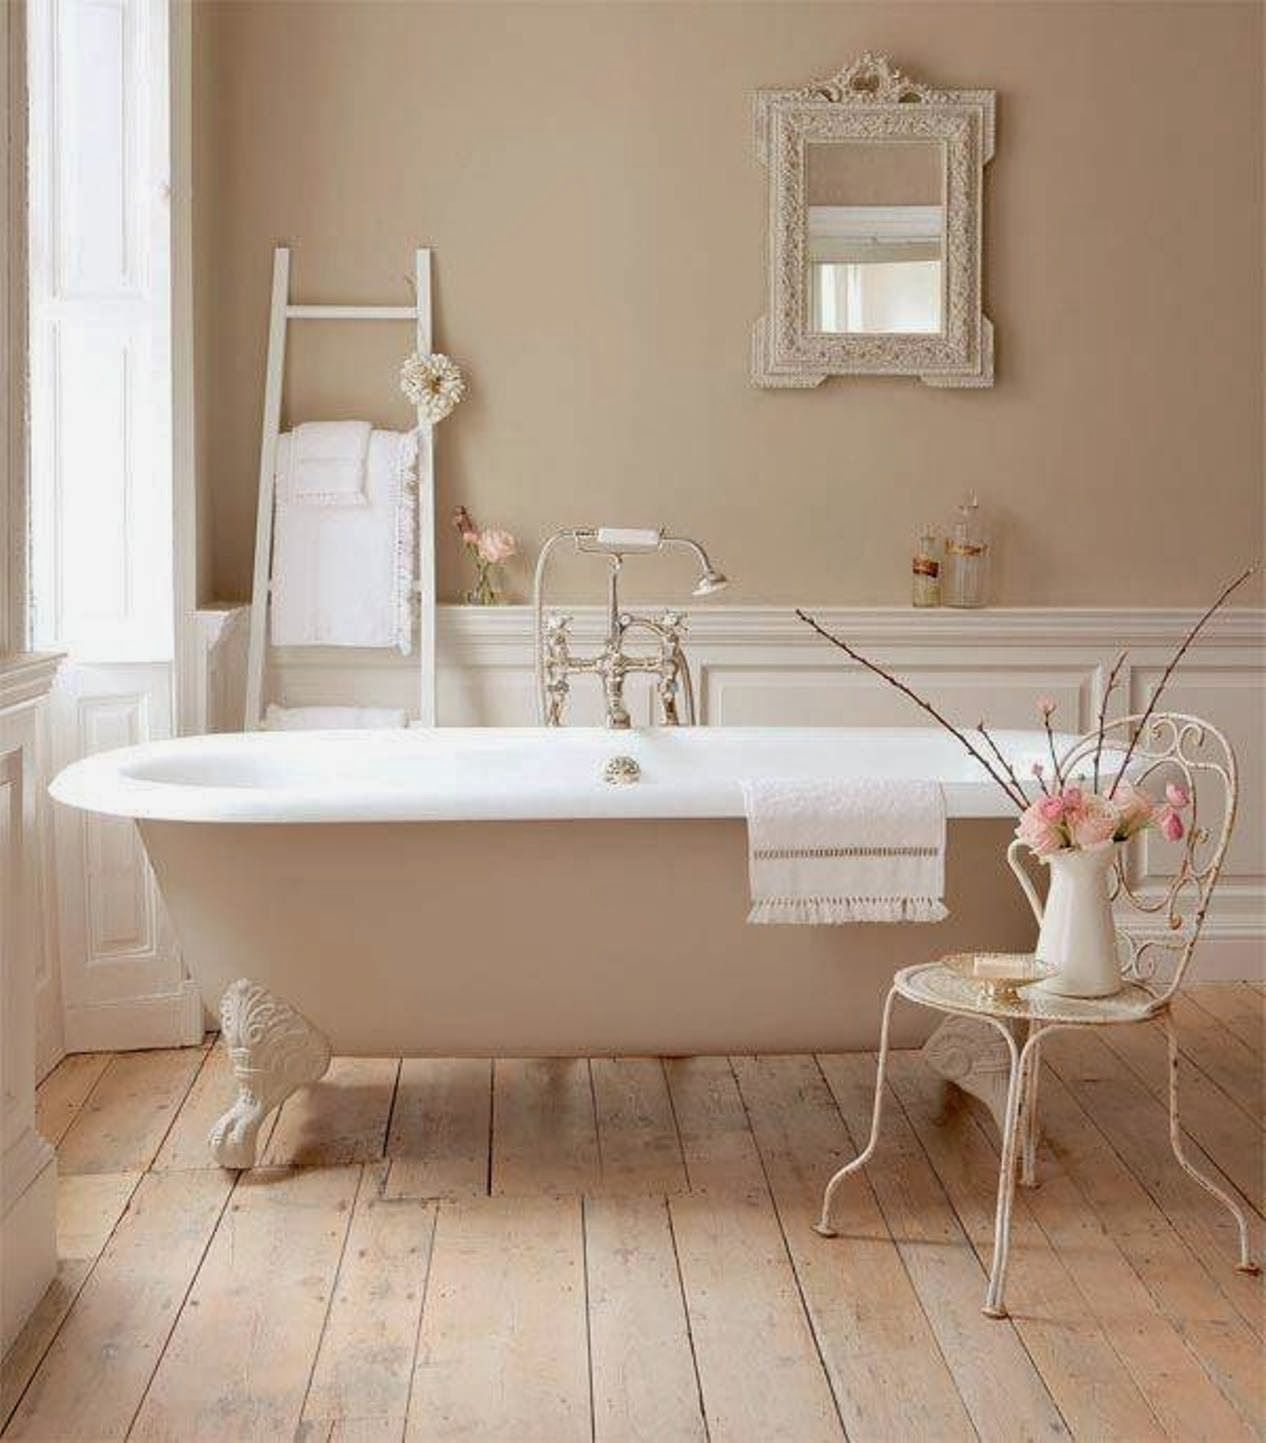 bagni shabby chic - Cerca con Google | Shabby chic homes | Pinterest ...